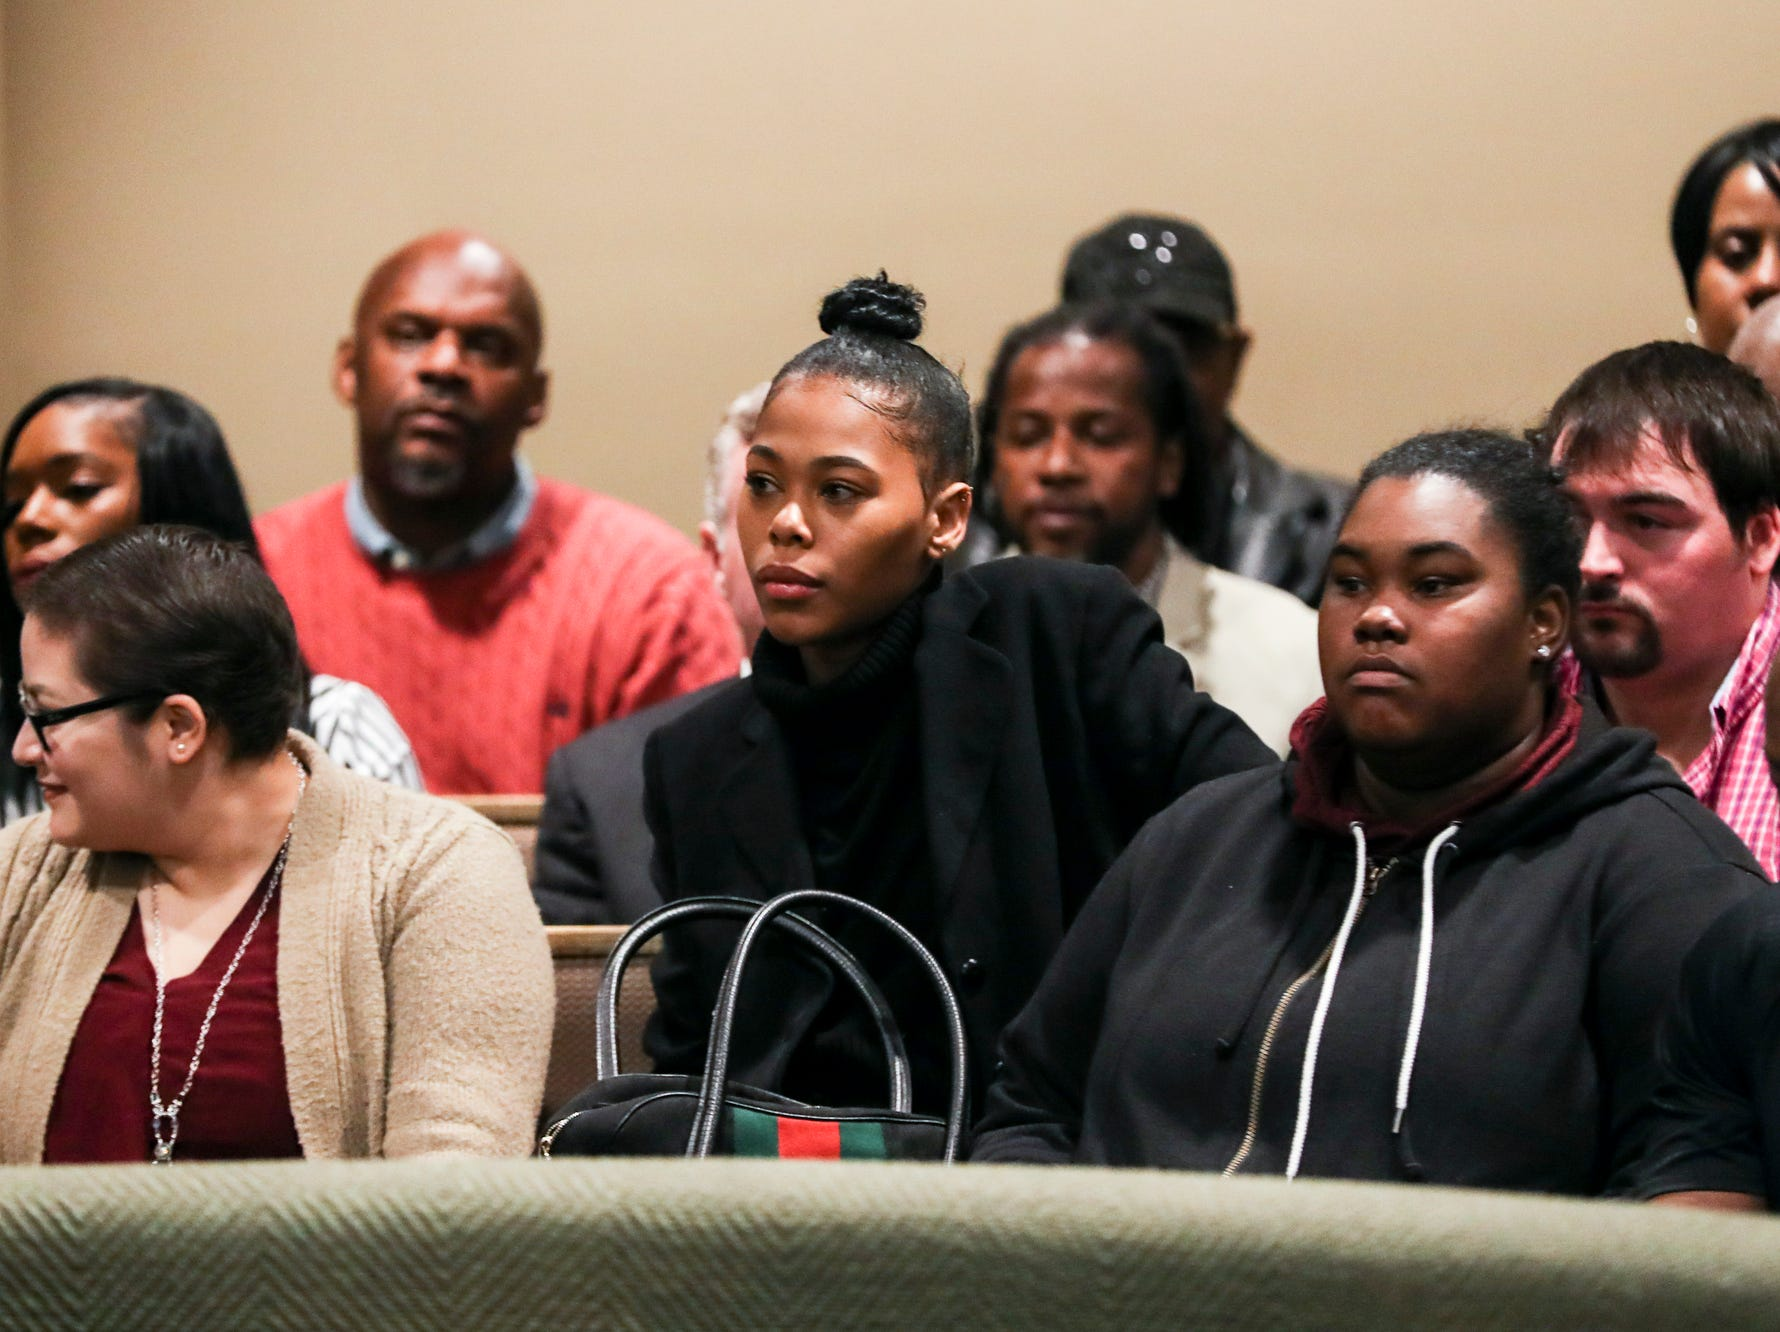 November 29 2018 - Loren Wright, daughter of Lorenzen and Sherra Wright, is seen in the courtroom on Thursday. A trial date of Sept. 16, 2019 was set on Thursday before Criminal Court Judge Lee Coffee. Sherra Wright and Billy Ray Turner are charged with first-degree murder in Lorenzen Wright's July 2010 shooting death.